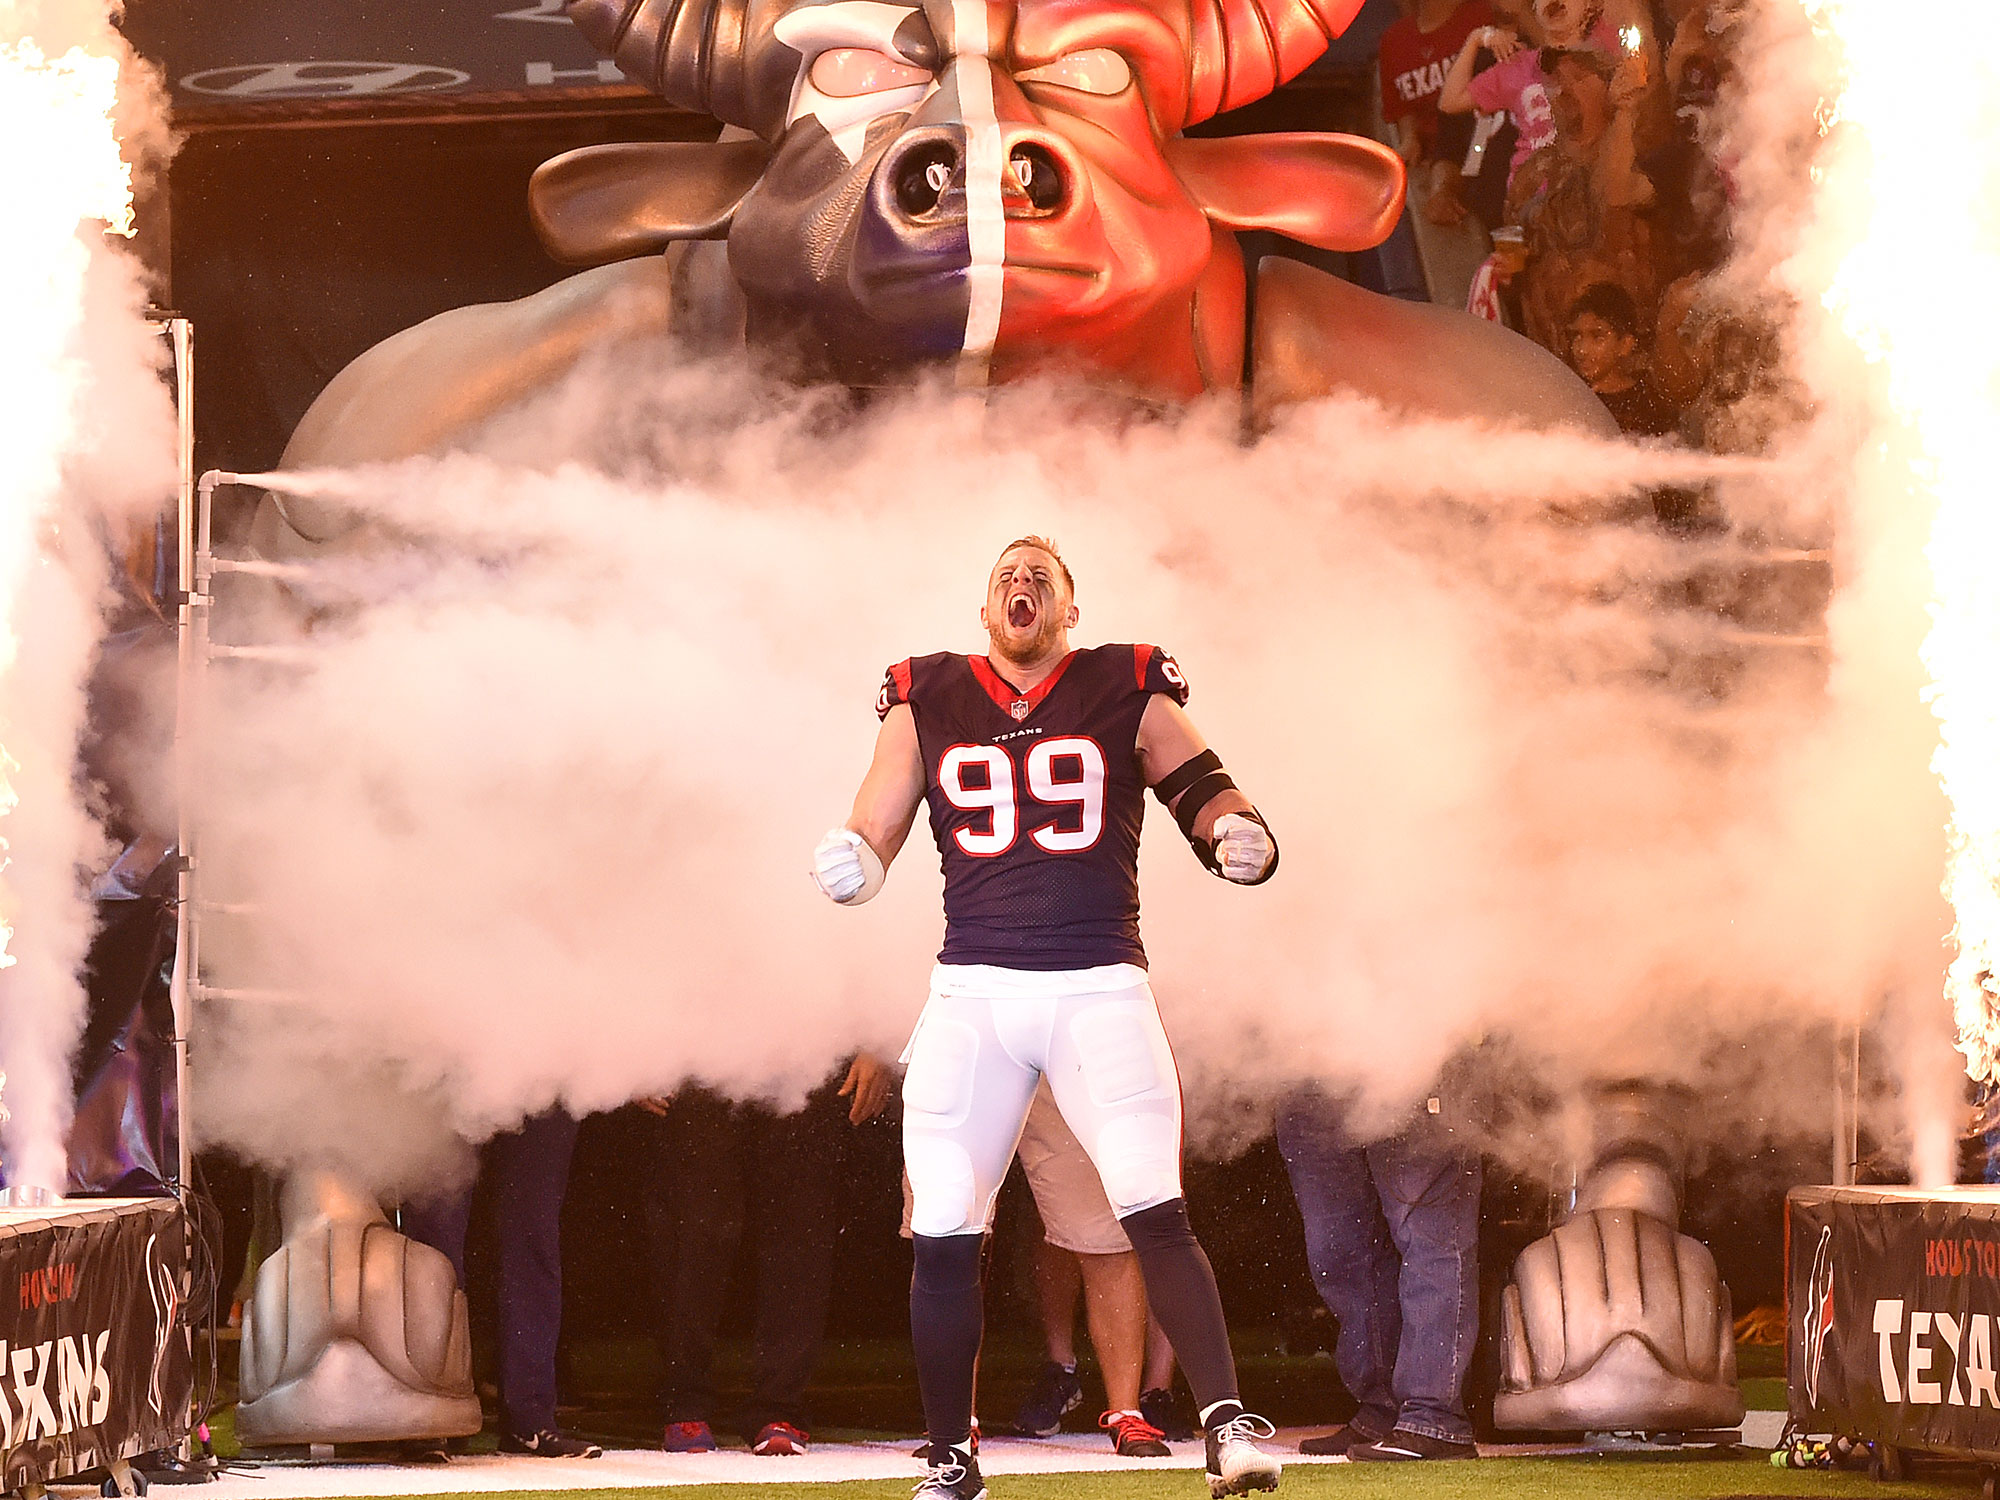 SI's 2017 Sportsperson of the Yearfounded the Justin J. Watt Foundation, a charity that provides after-school opportunities for children in different communities and aims to get them involved in athletics in a safe environment. With the Texans, Watt has frequently invited disabled and underprivileged children to games and practices. And on Aug. 26 of this year, the three-time NFL Defensive Player of the Year launched a fund on YouCaring.com to raise money for victims of Hurricane Harvey with an initial goal of $200,000. Watt closed the fundraiser after raising an astonishing $37,097,298, which is more than 185 times his initial goal.